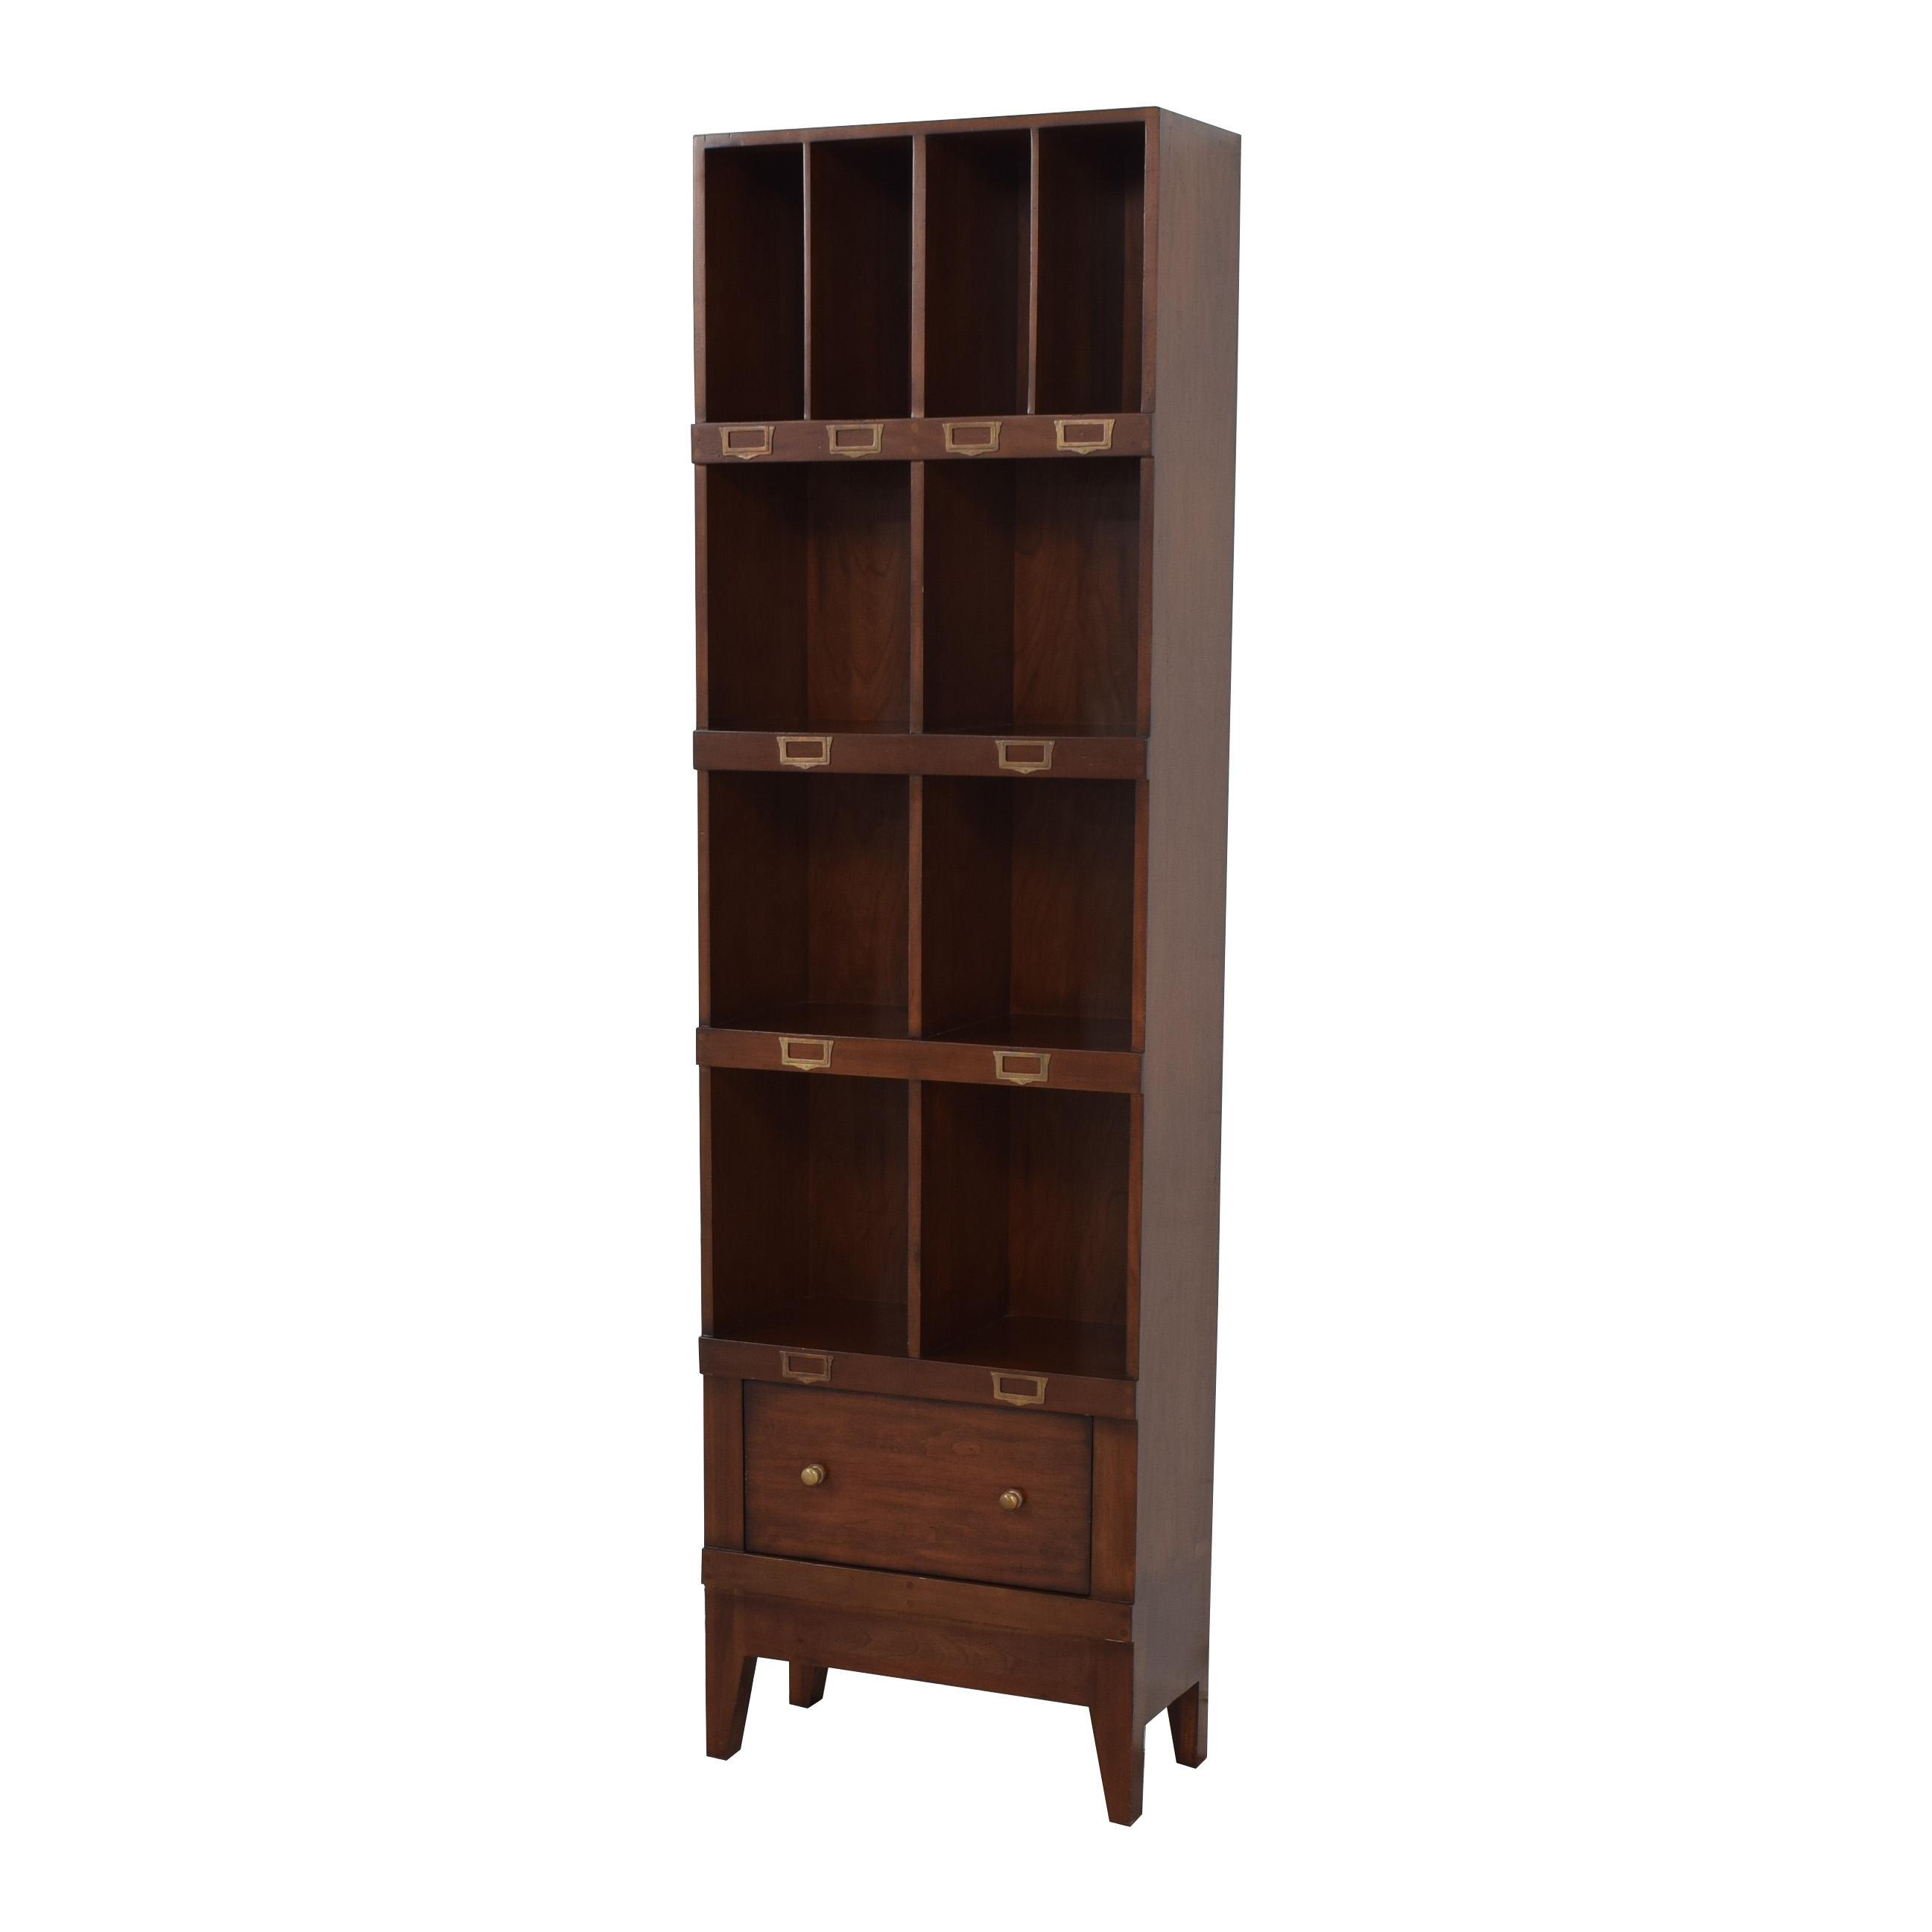 French Heritage French Heritage Modified Bookcase on sale